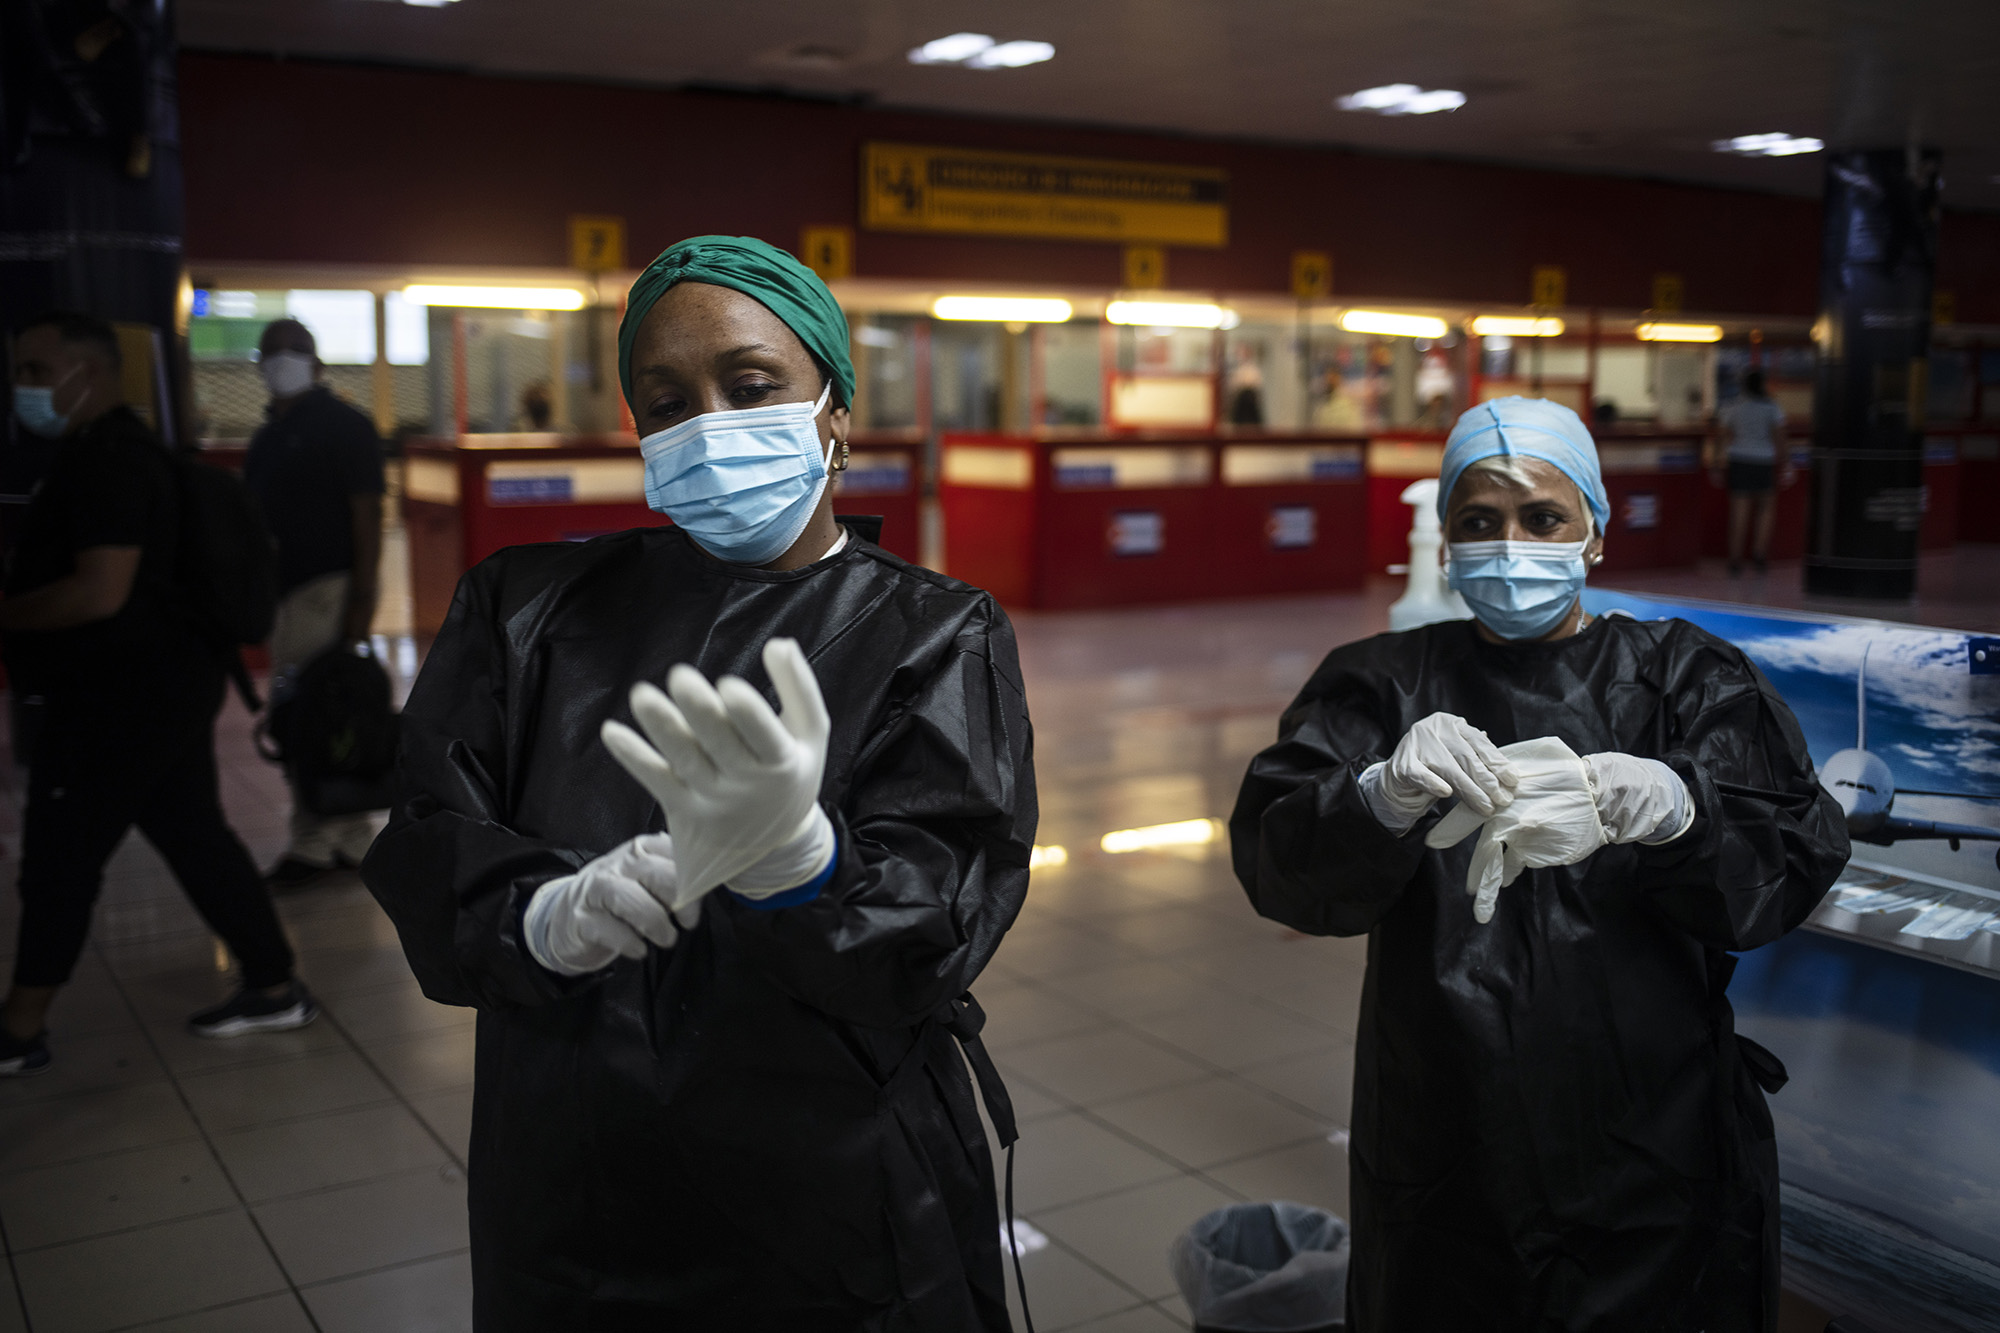 Health workers prepare to administer Covid-19 tests for passengers arriving from Mexico at the Jose Marti International Airport in Havana, Cuba, on November 15, 2020.